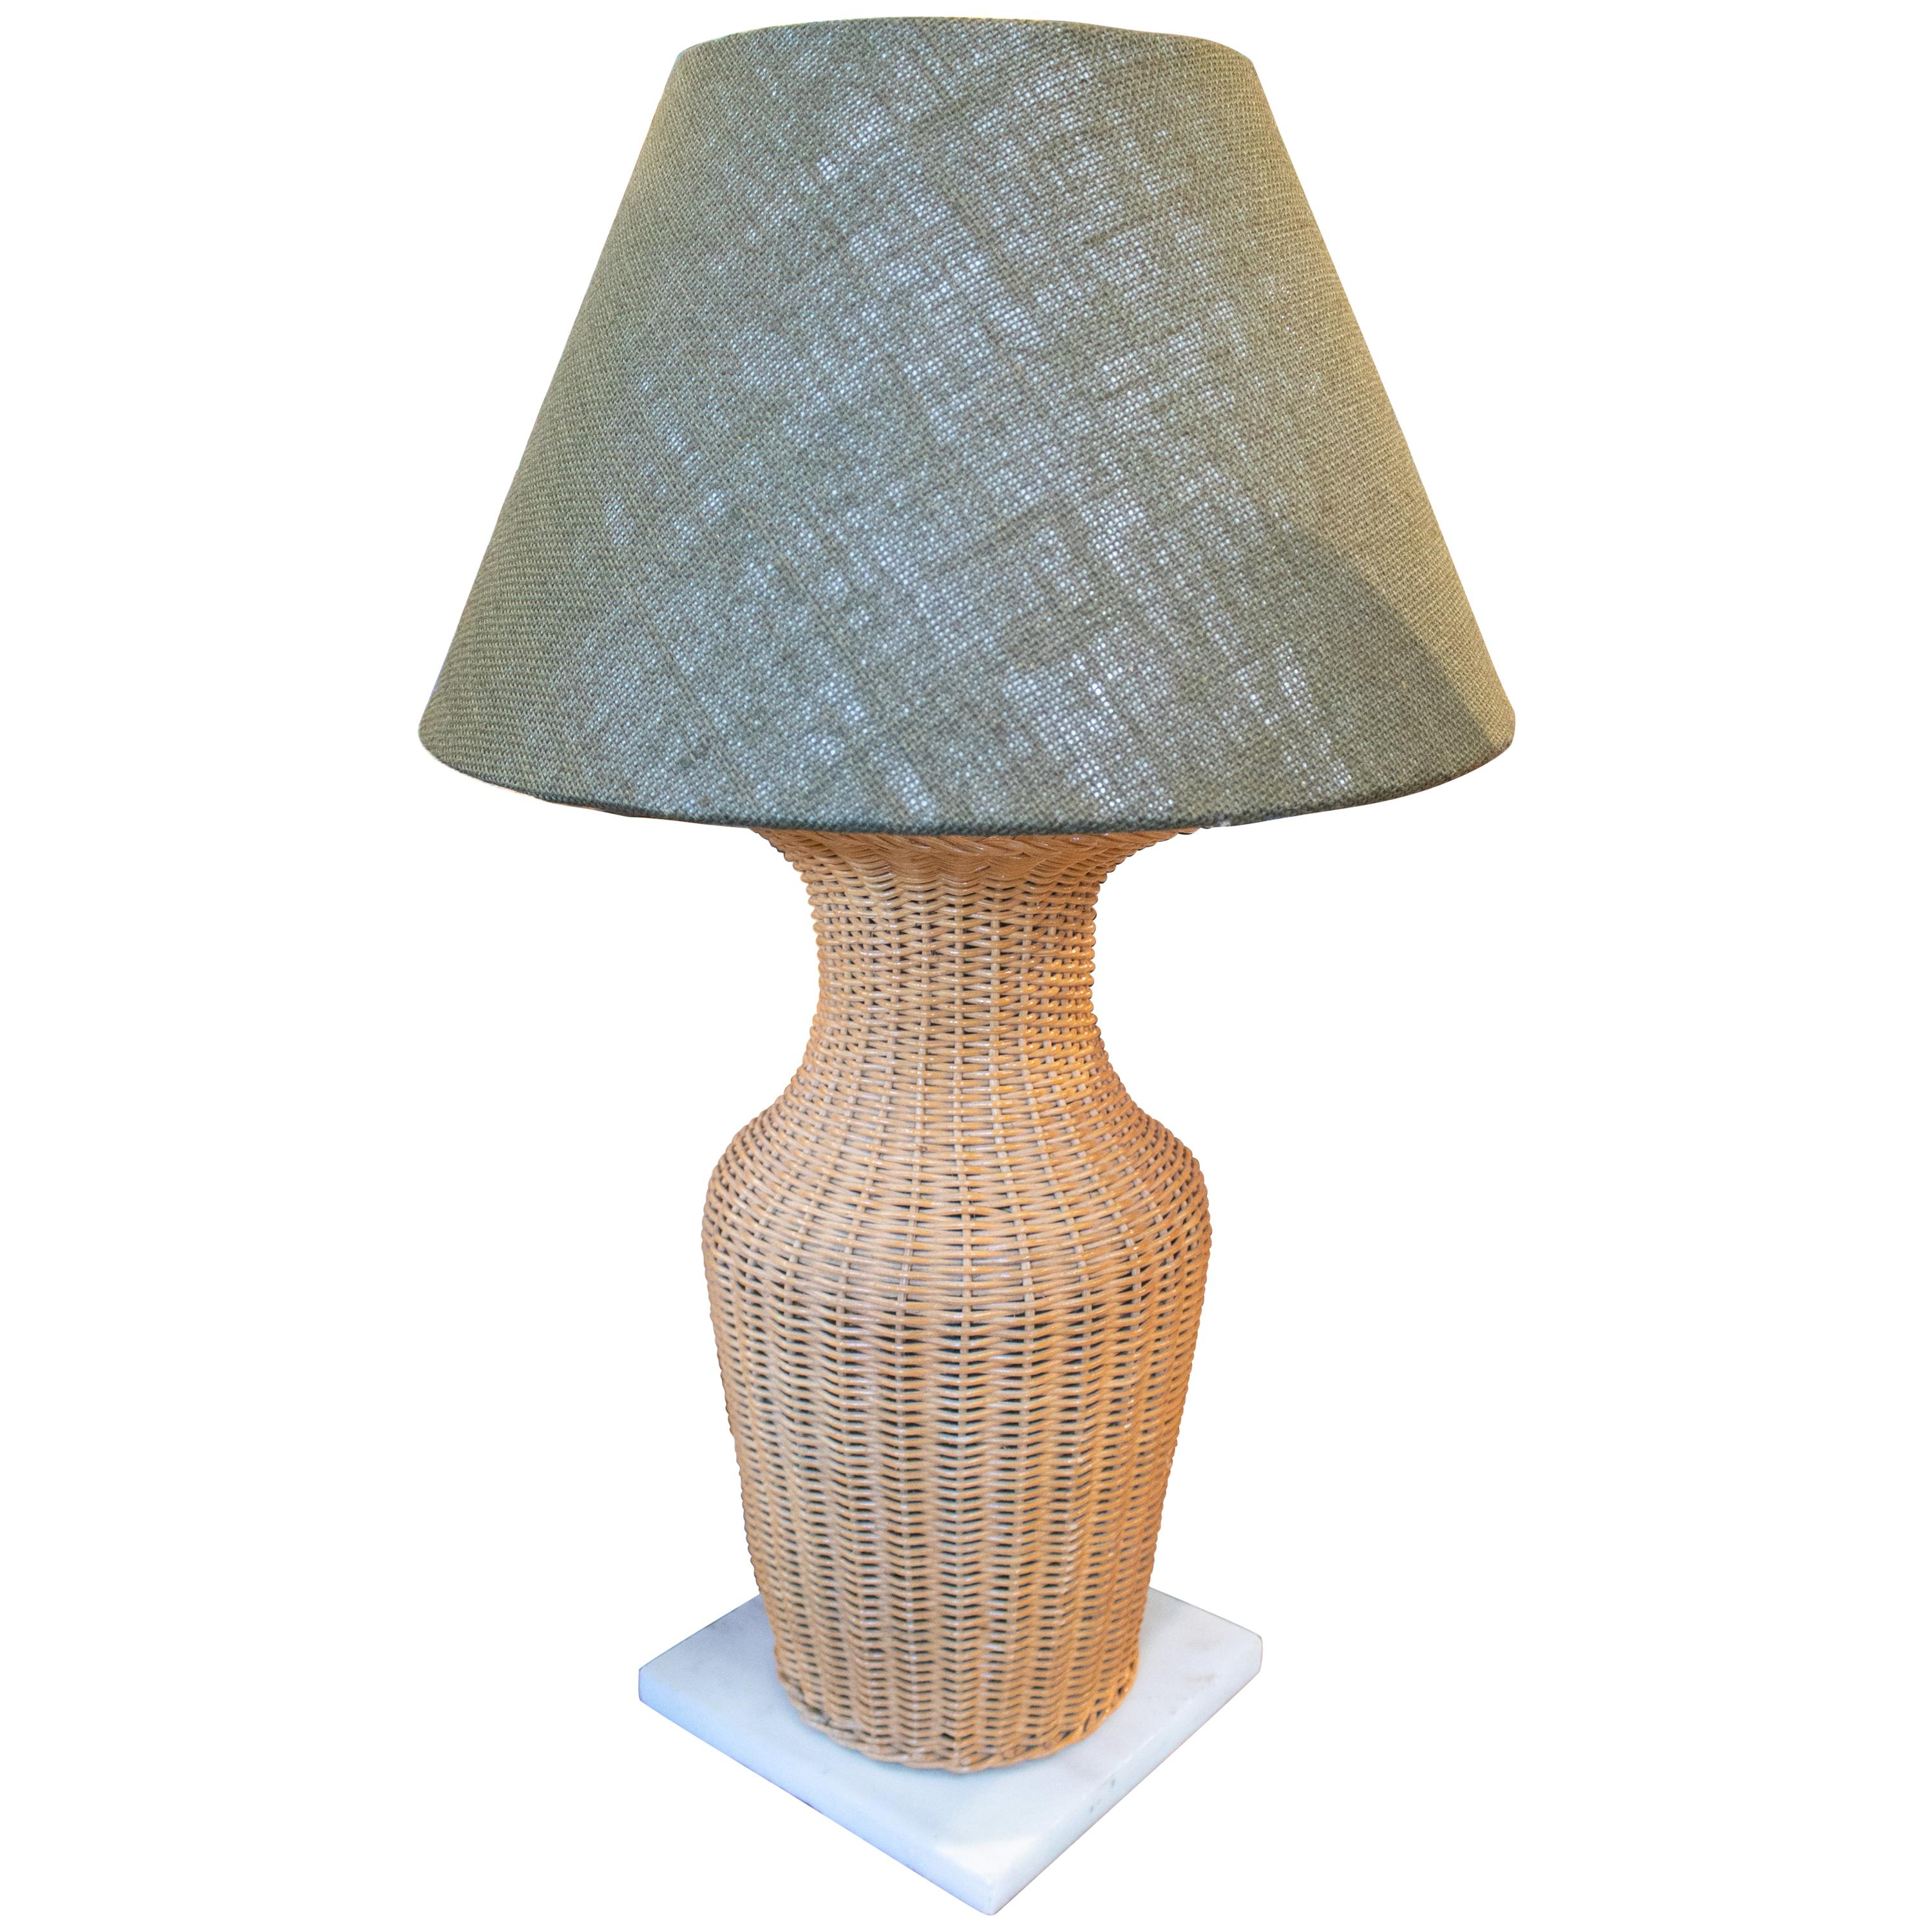 1970s Wicker Lamp With Green Shade On Square White Marble Base For Sale At 1stdibs